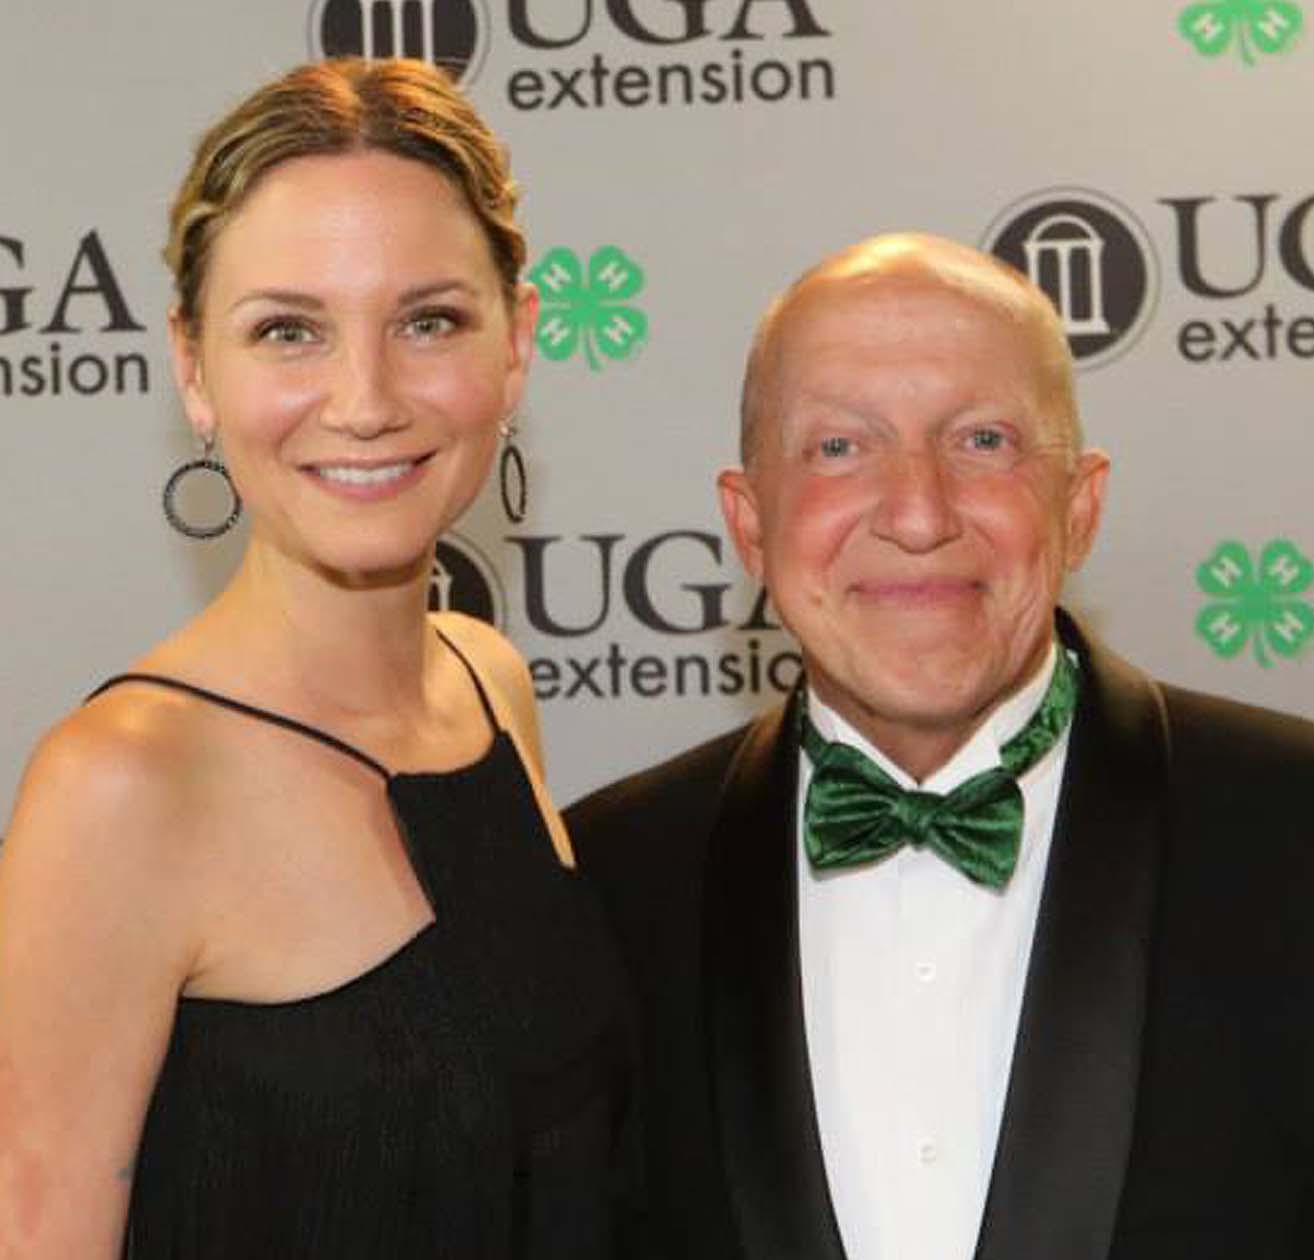 With Grammy award-winning artist and Georgia 4-H alumna Jennifer Nettles as honorary chairperson and former state leader Roger C. 'Bo' Ryles receiving the Georgia 4-H Lifetime Achievement Award, the 2015 Georgia 4-H Gala was the organization's most successful event to date.